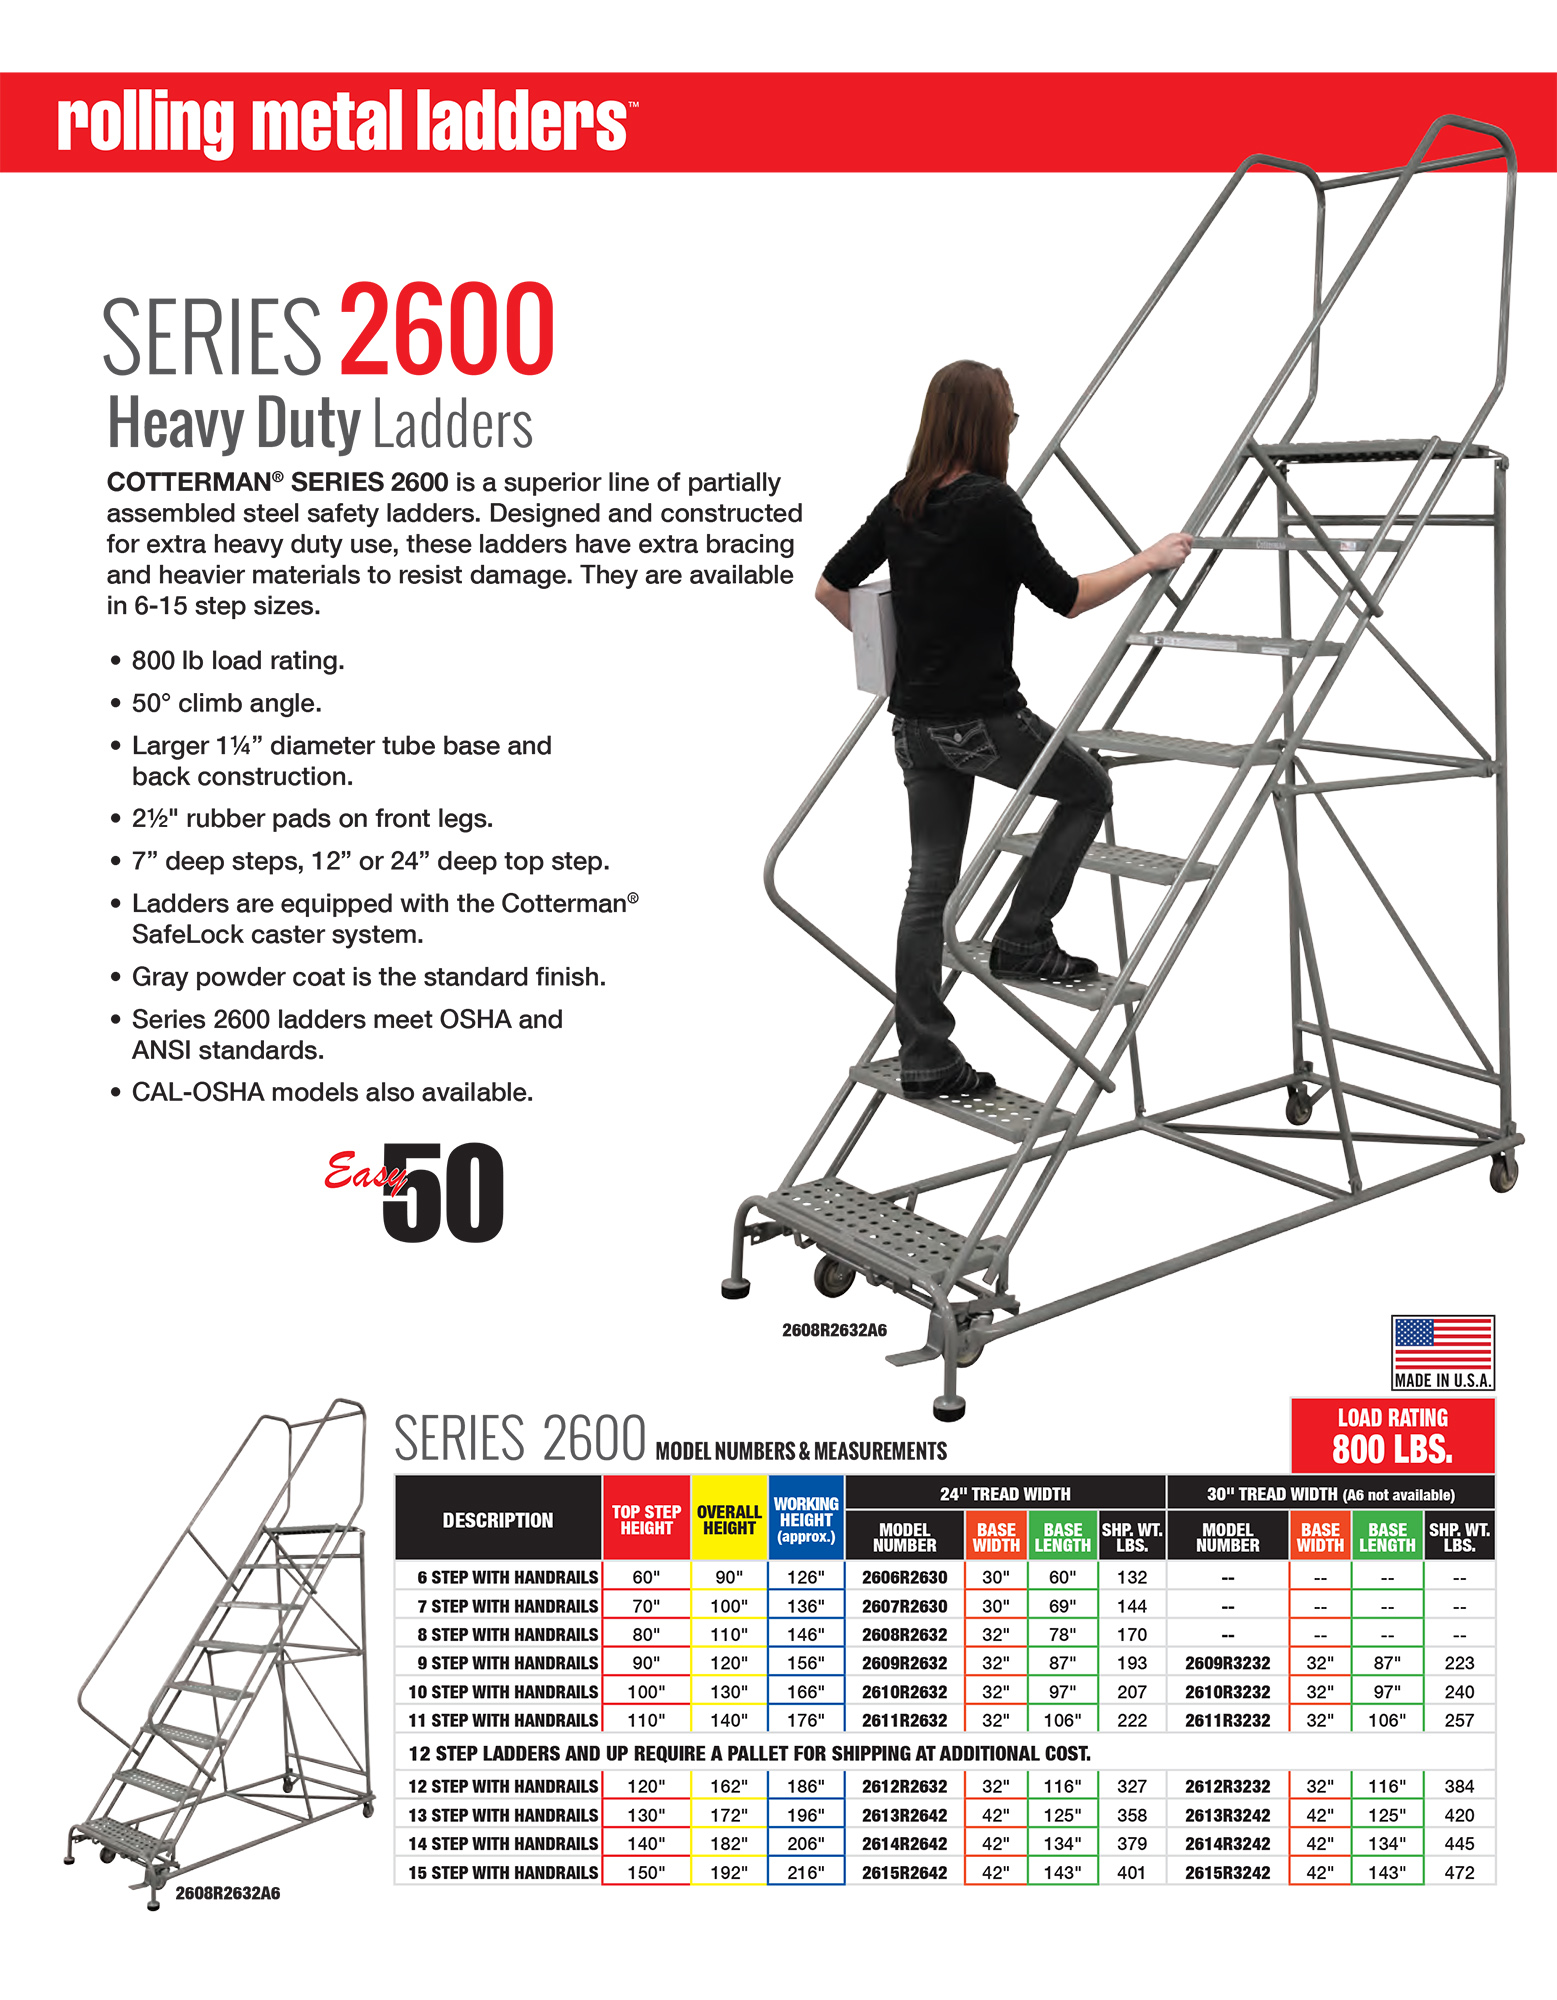 Cotterman Heavy Duty Ladders Series 2600 Information